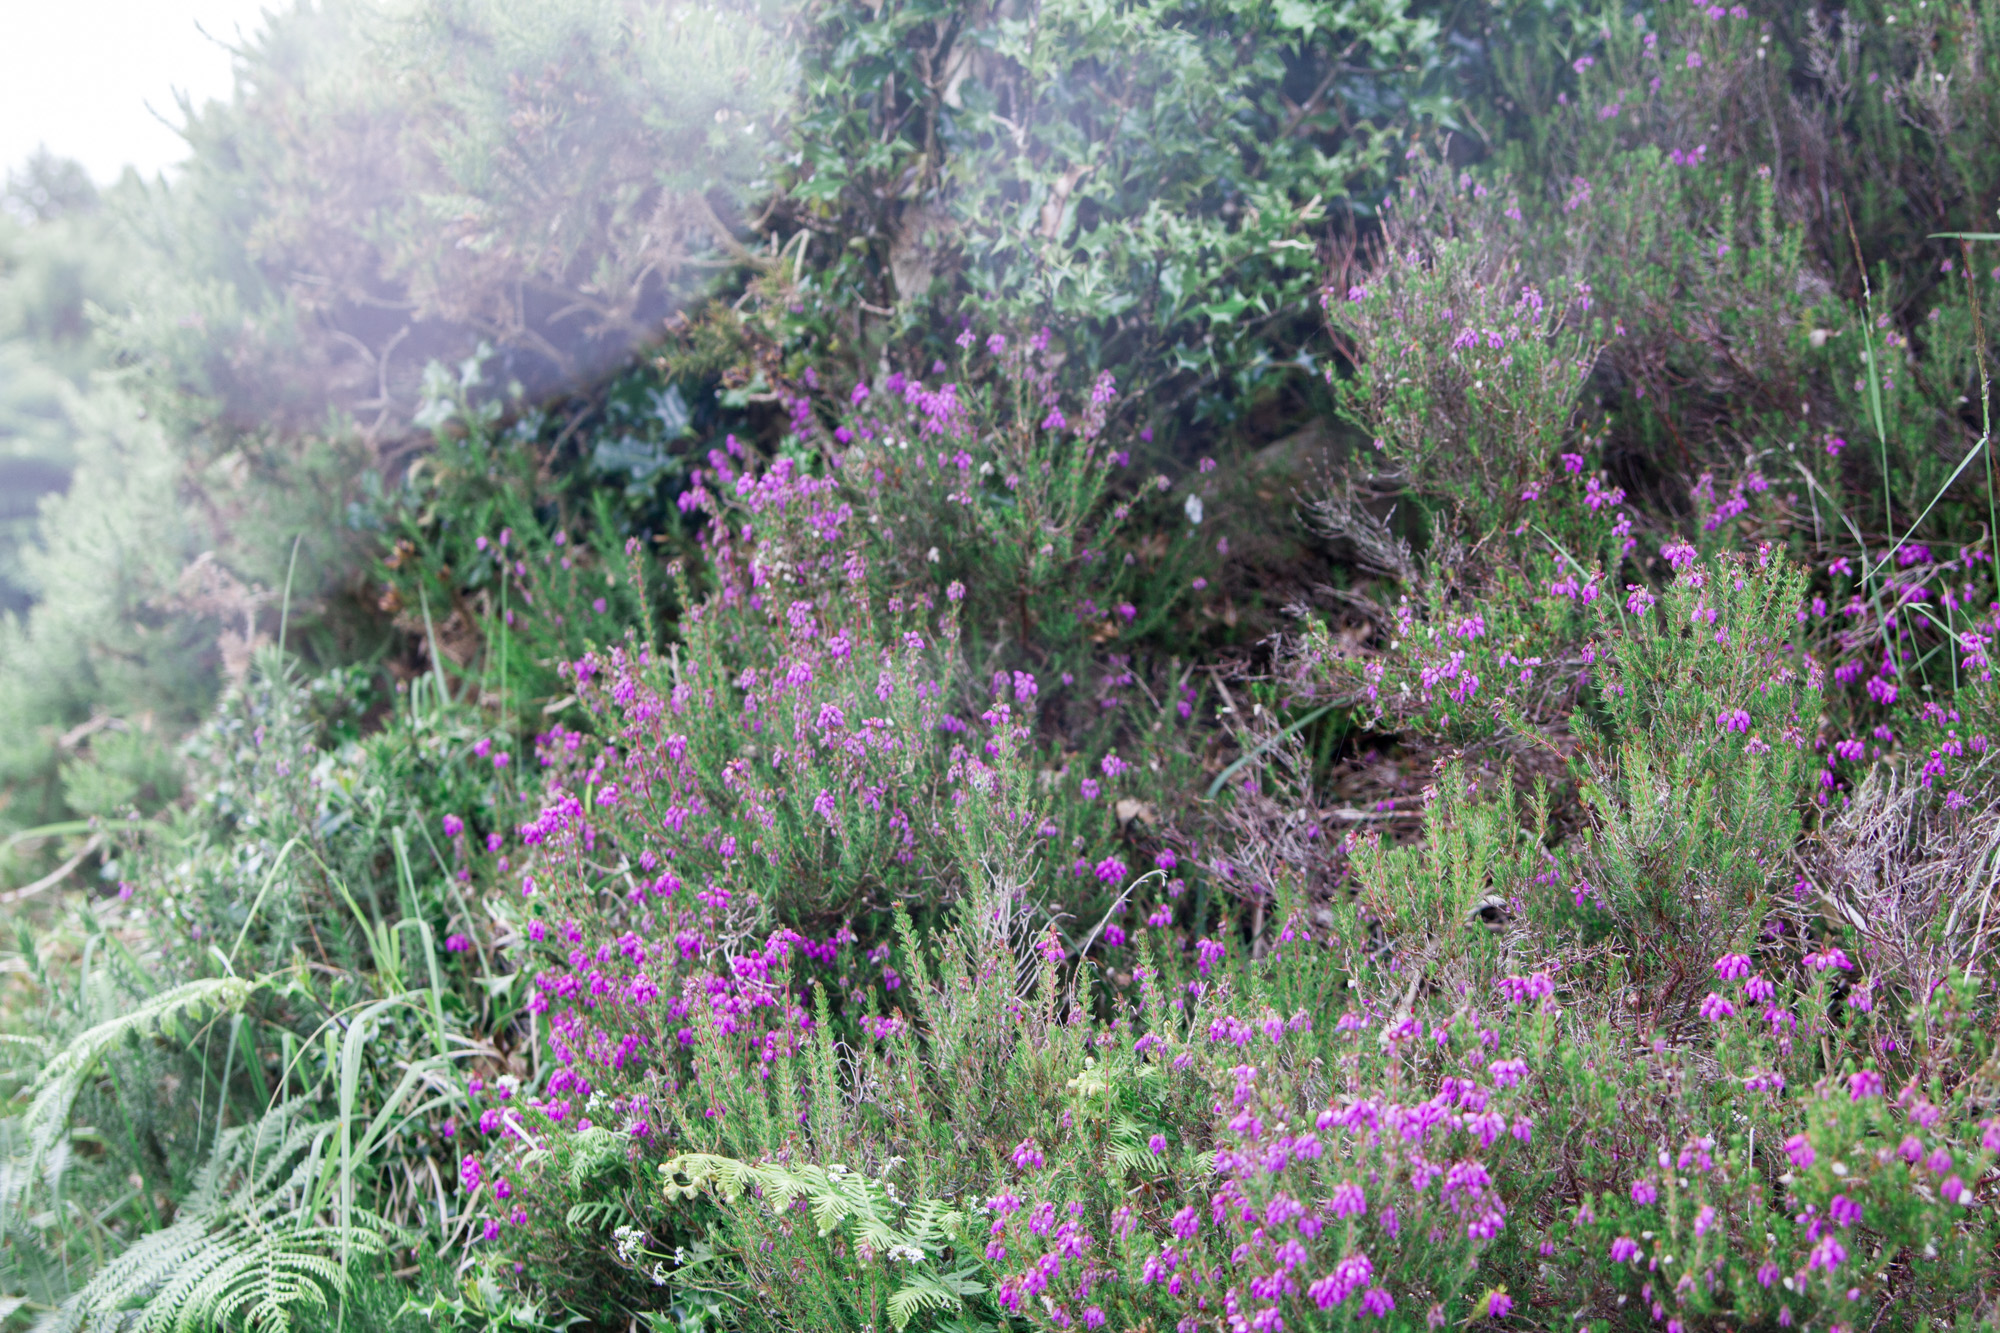 Purple flowers surrounded by plants in Killarney National Park